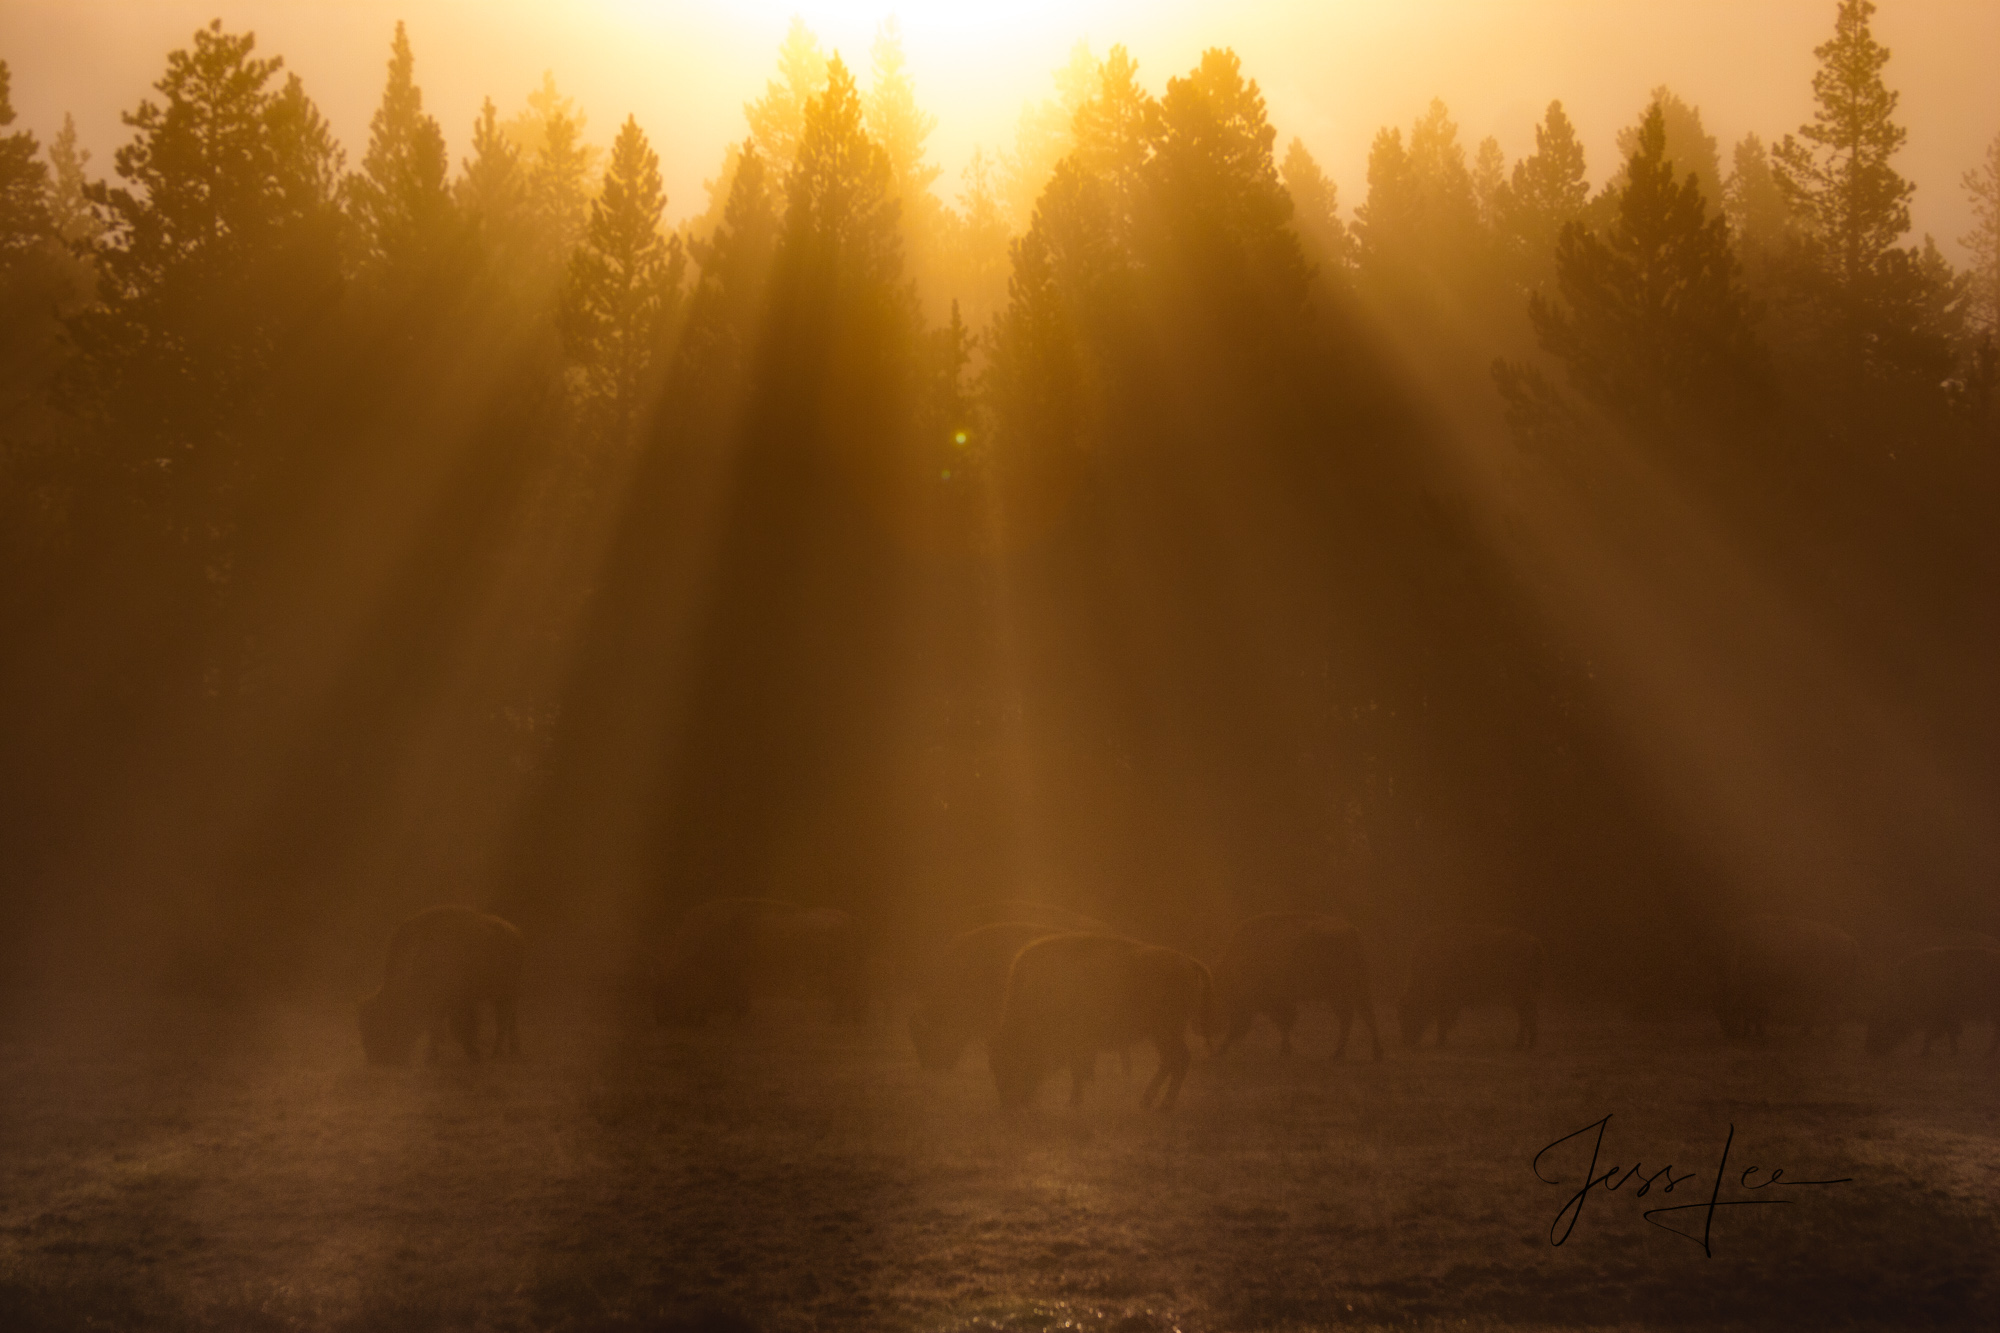 Yellowstone Bison or American Buffalo.. A Limited Edition of 800 Prints. These Sunbeam Bison fine art wildlife photographs are...